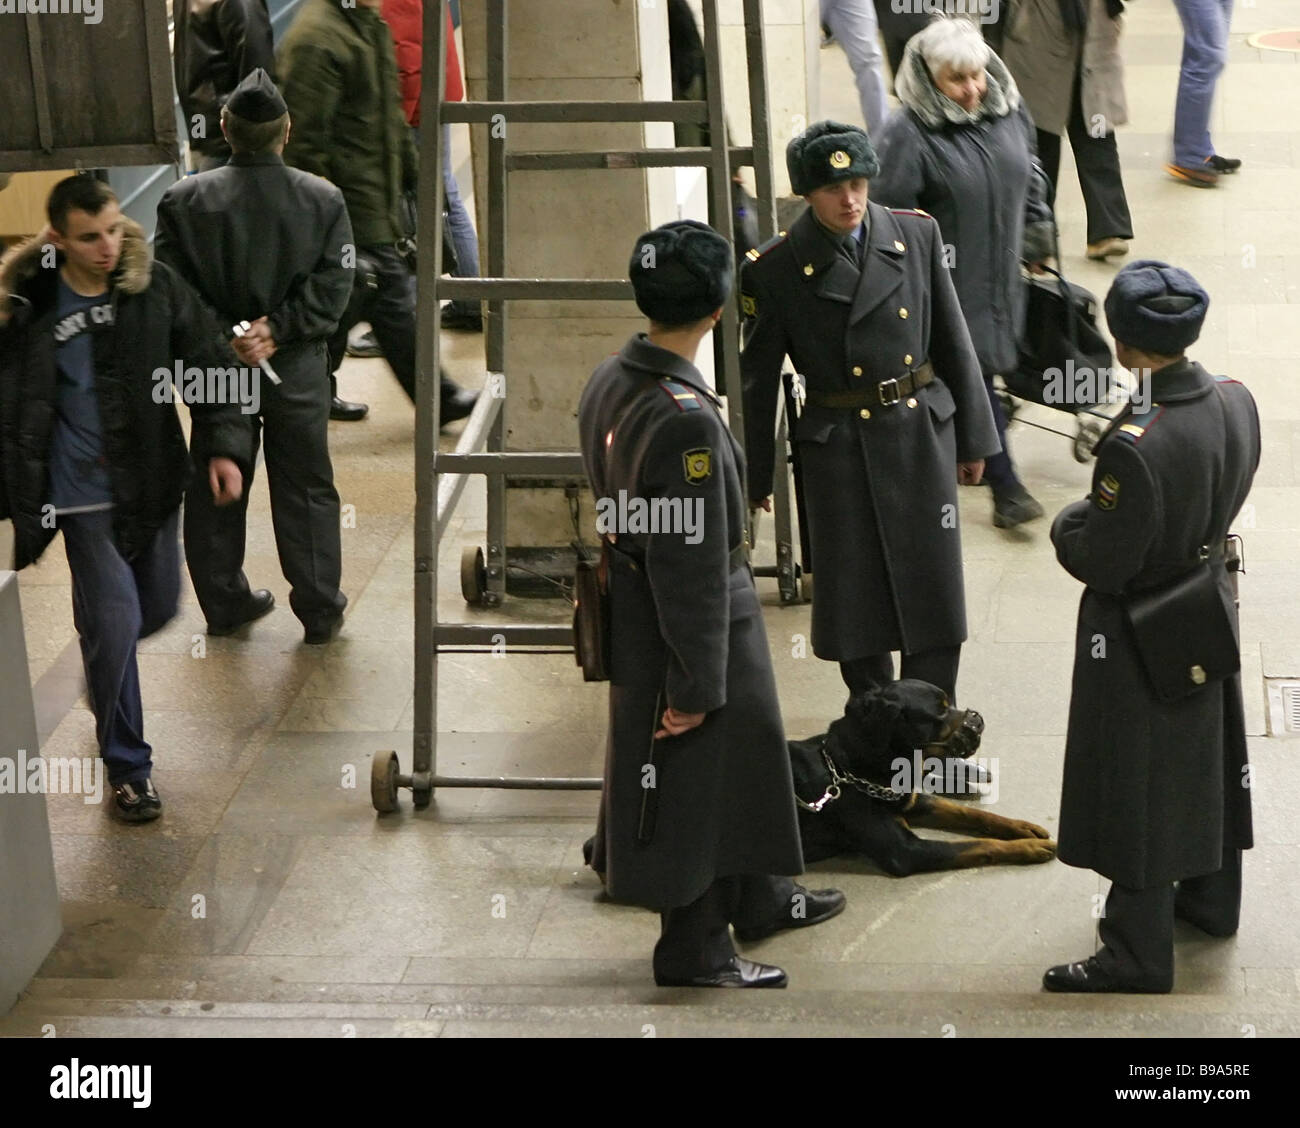 Russia builds up security with terrorist threats circulated A police force on duty at a Moscow subway station - Stock Image